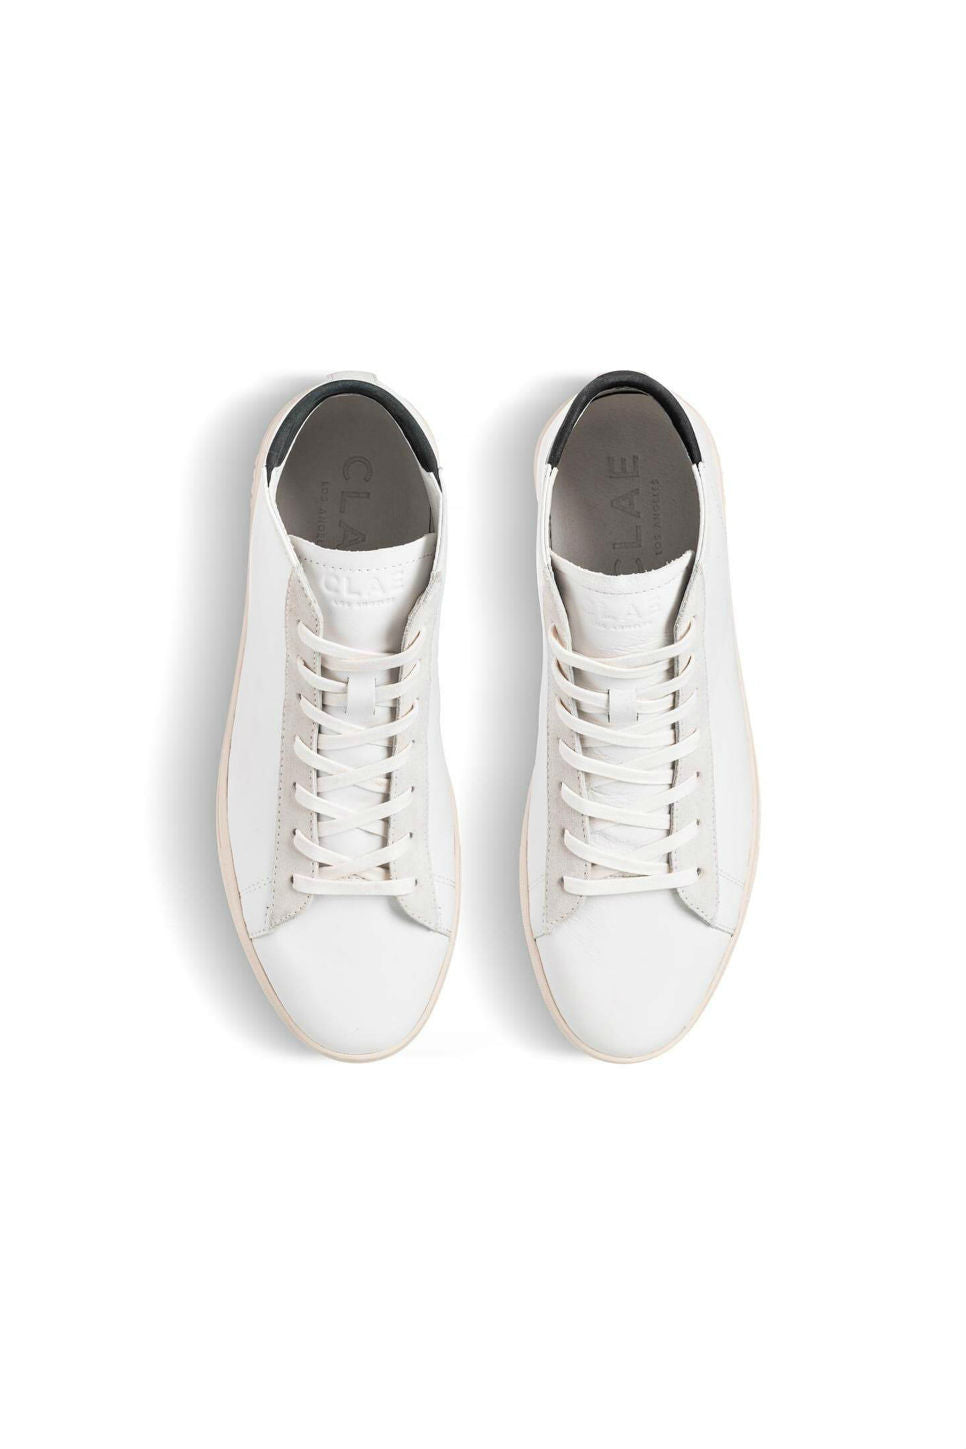 CLAE - Bradley Mid - White Leather/Black - Top